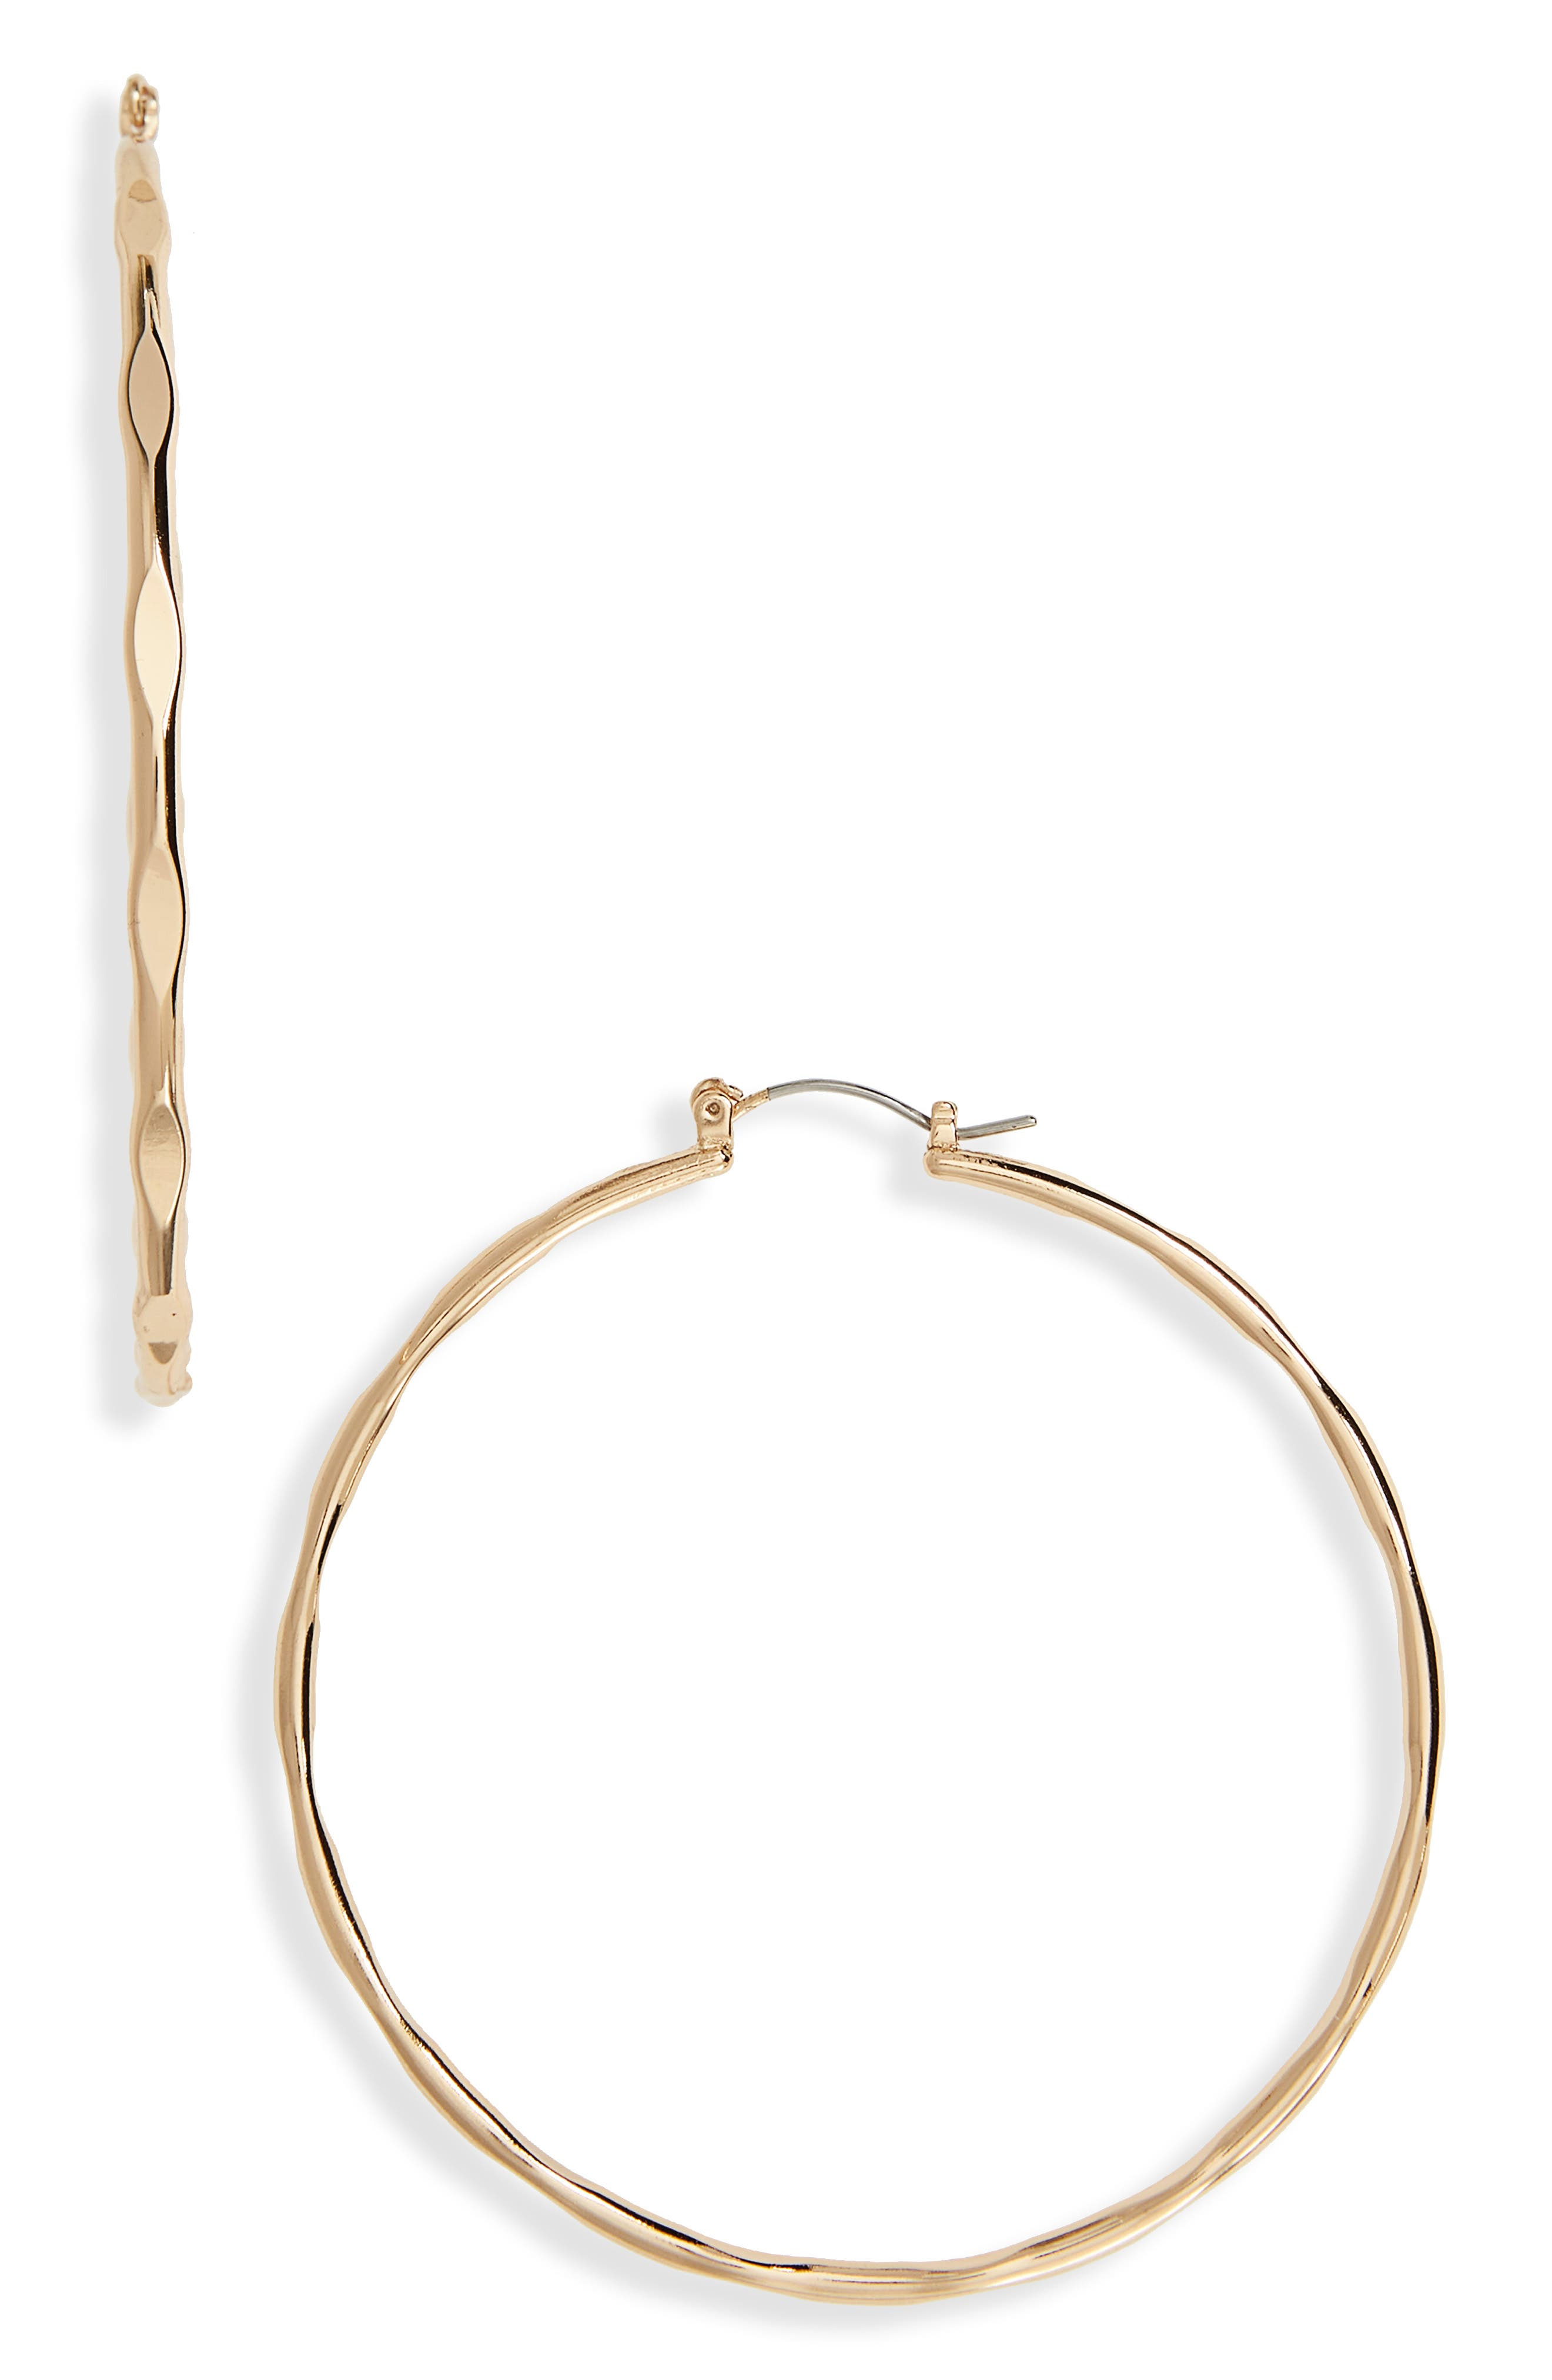 Large Hoop Earrings,                             Main thumbnail 1, color,                             Gold